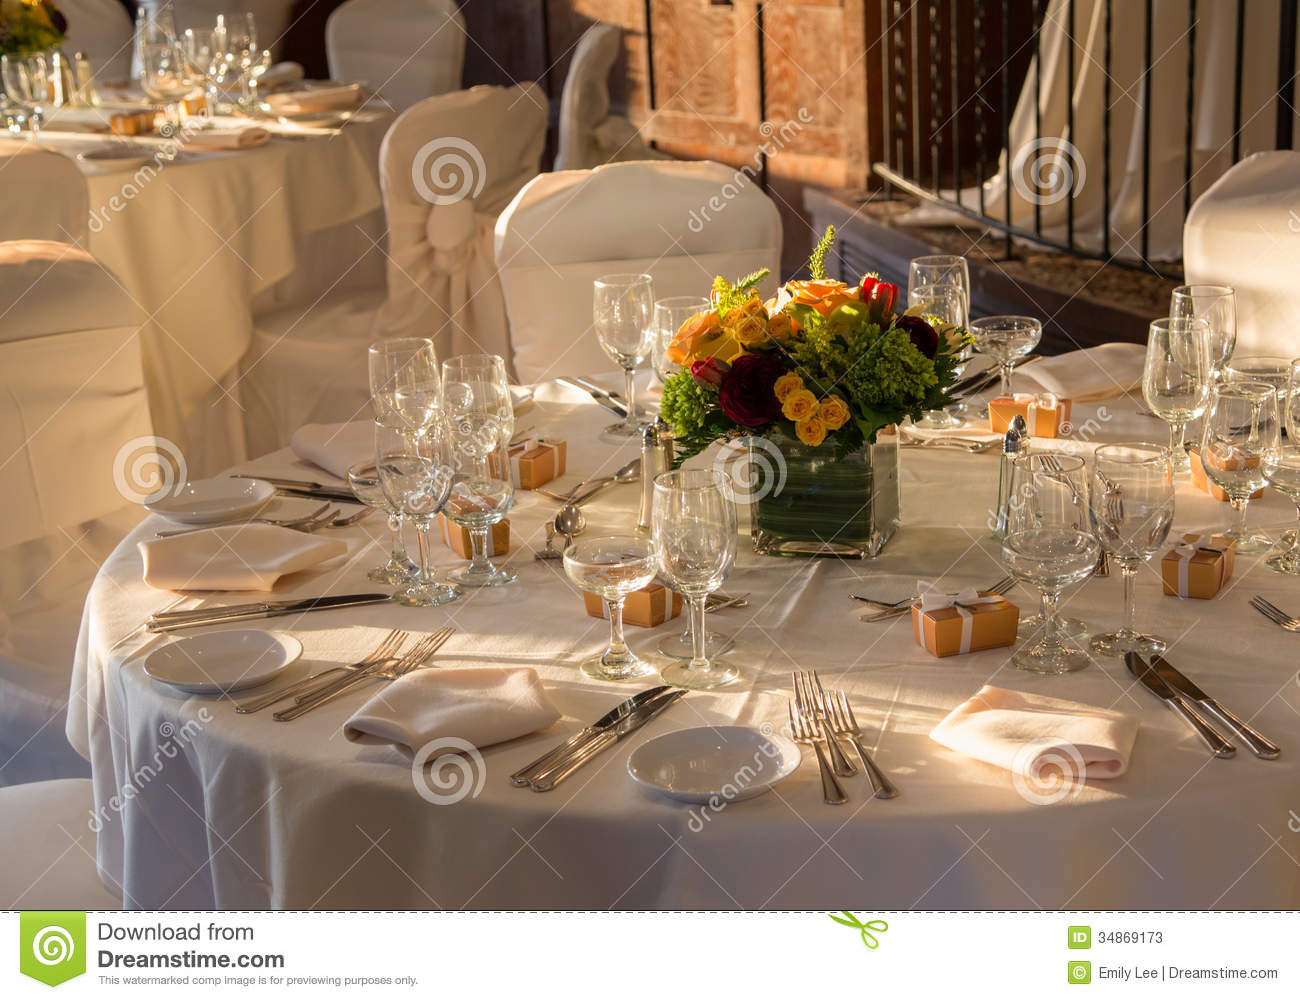 Reception Hall Ready Stock Photos Image 34869173 : reception hall ready dining room le chateau south salem ny all set up to host simple elegant wedding 34869173 from www.dreamstime.com size 1300 x 1000 jpeg 174kB